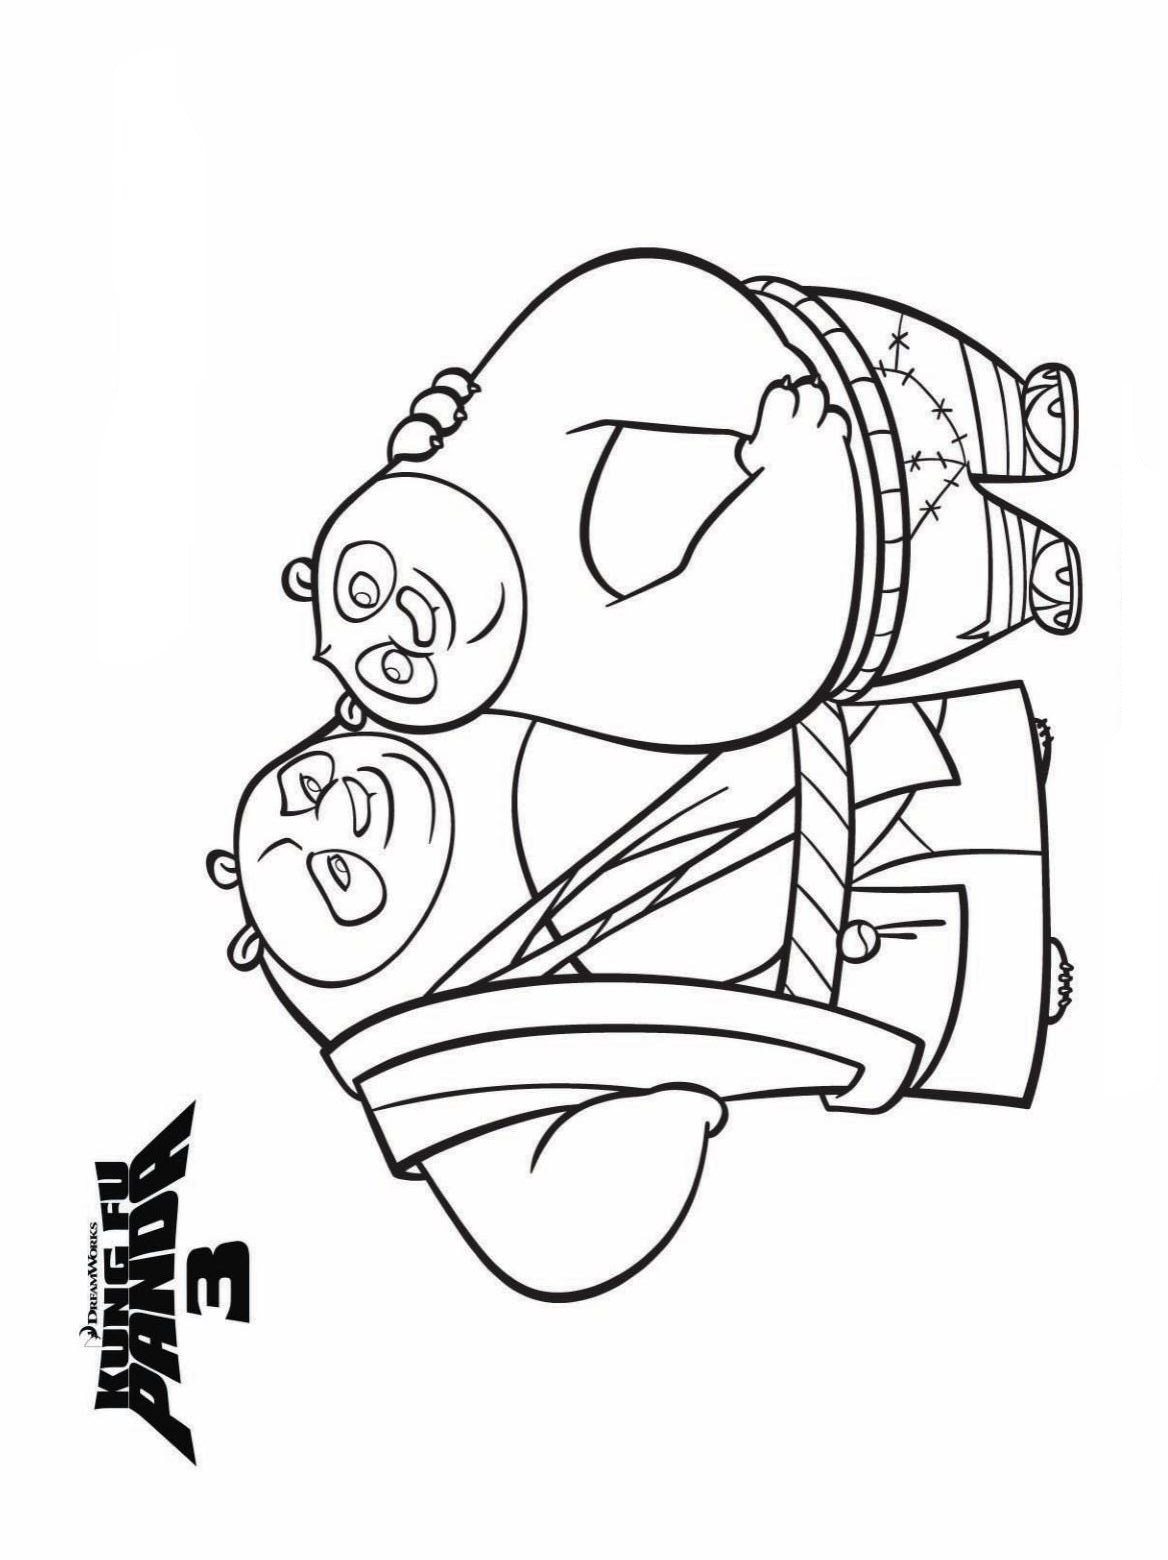 Printable coloring pages kung fu panda - Kung Fu Panda 3